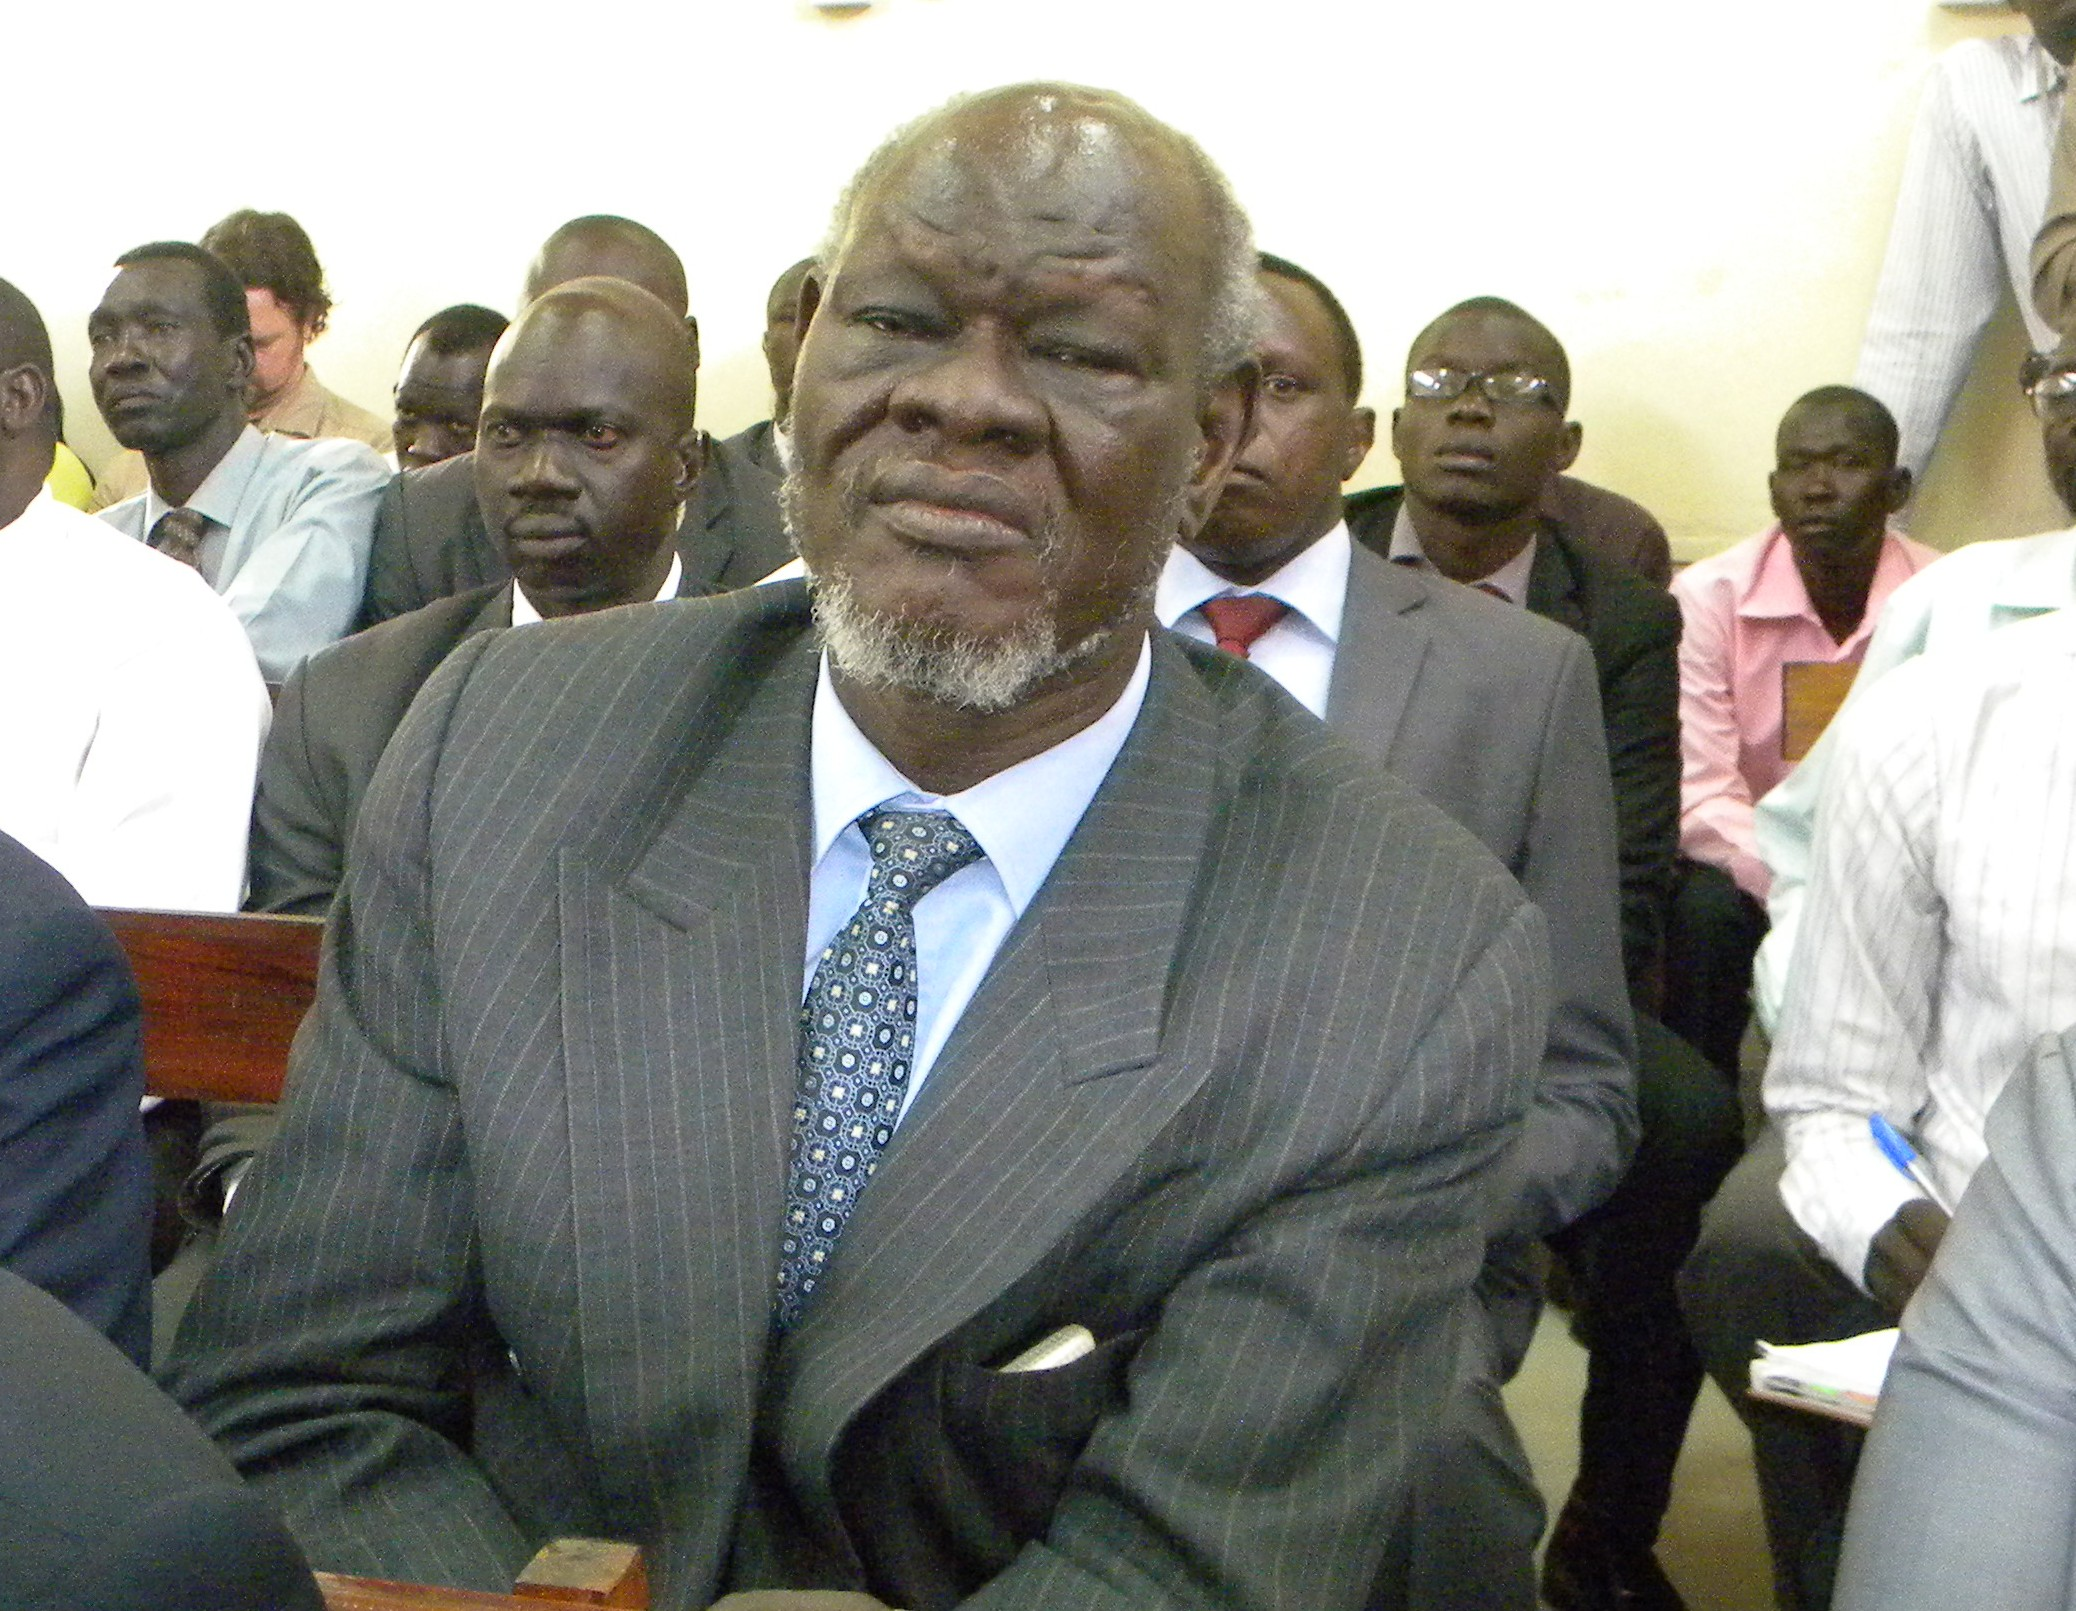 Dr Peter Adwok Attending the Court Session in Juba (Copyright Denis Dumo)